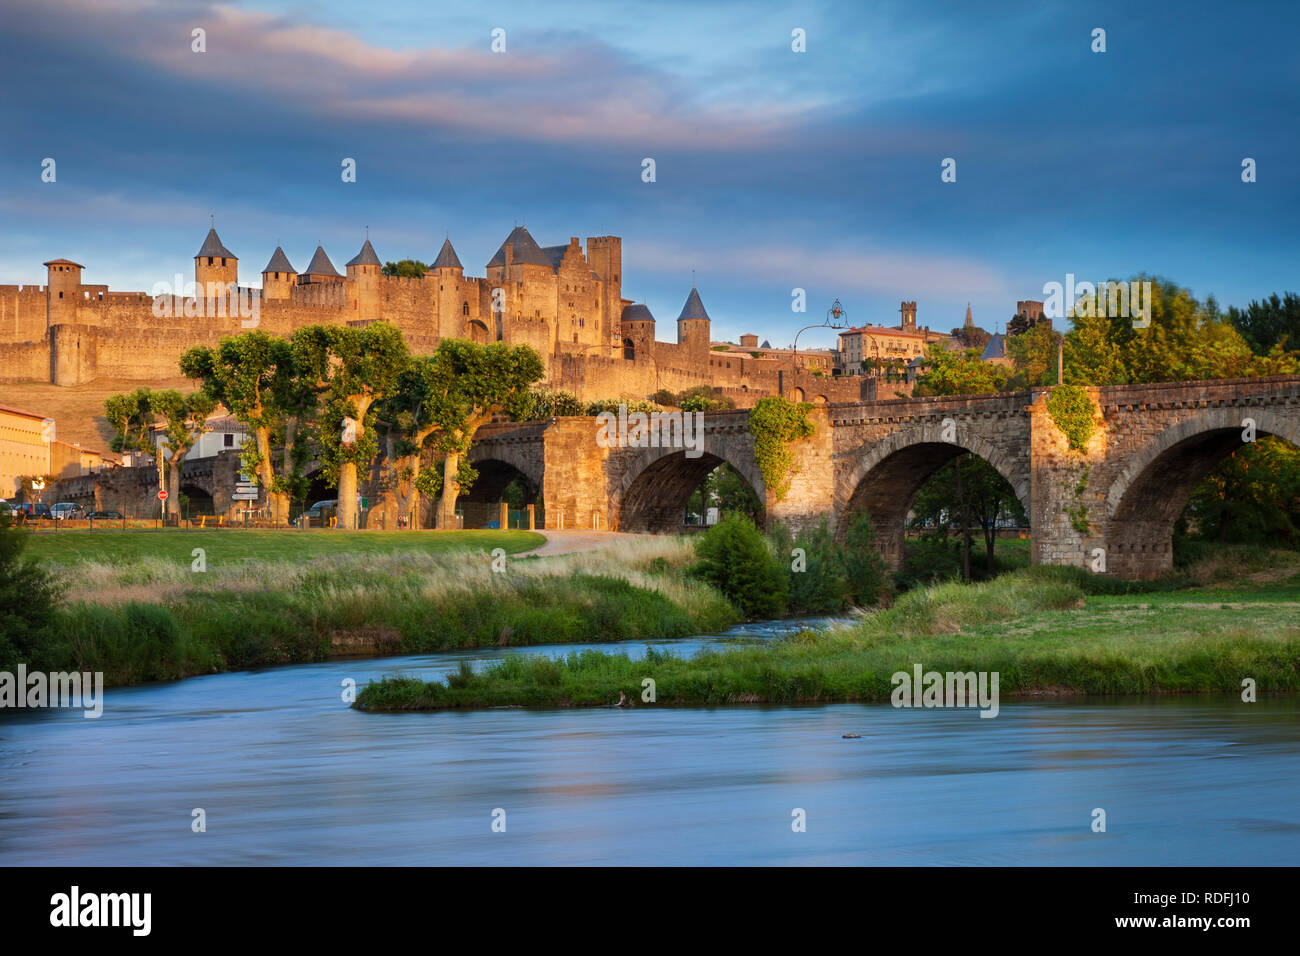 Setting sunlight over medieval town of Carcassonne and River Aude, Occitanie, France - Stock Image